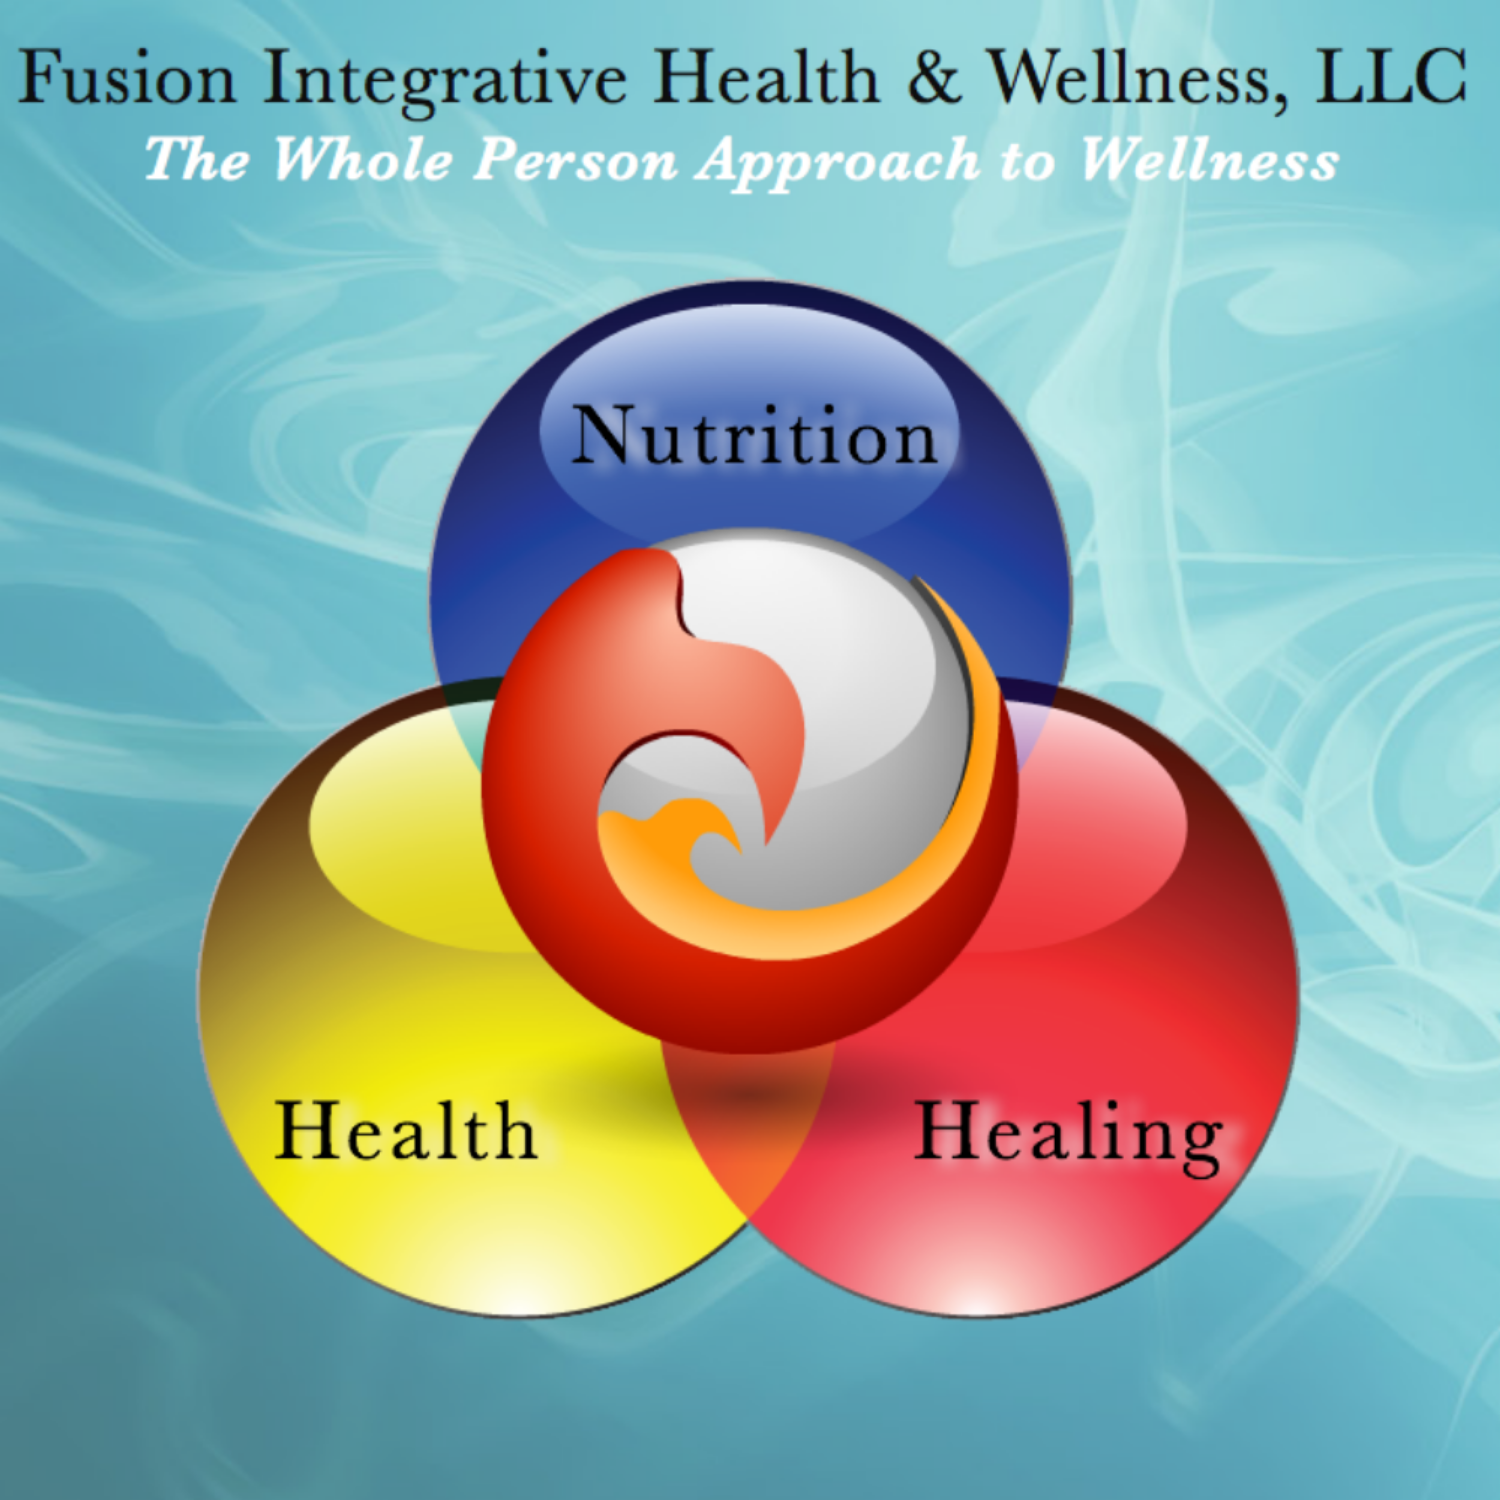 Fusion Integrative Health & Wellness, LLC